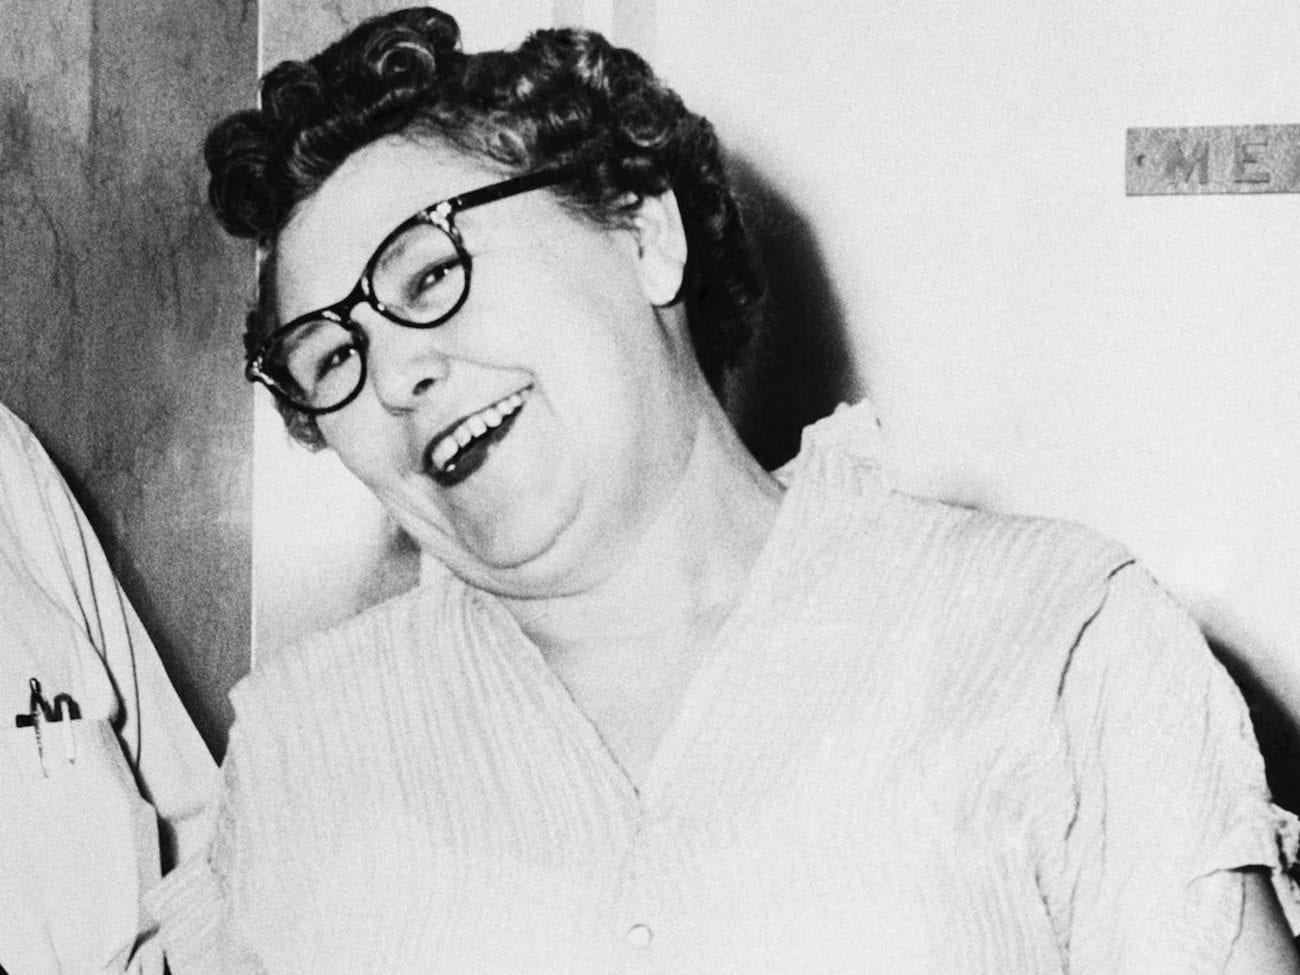 """Nannie Doss was a serial killer in the first half of the 20th century who earned the title """"The Giggling Nanny"""". Here's what we know."""